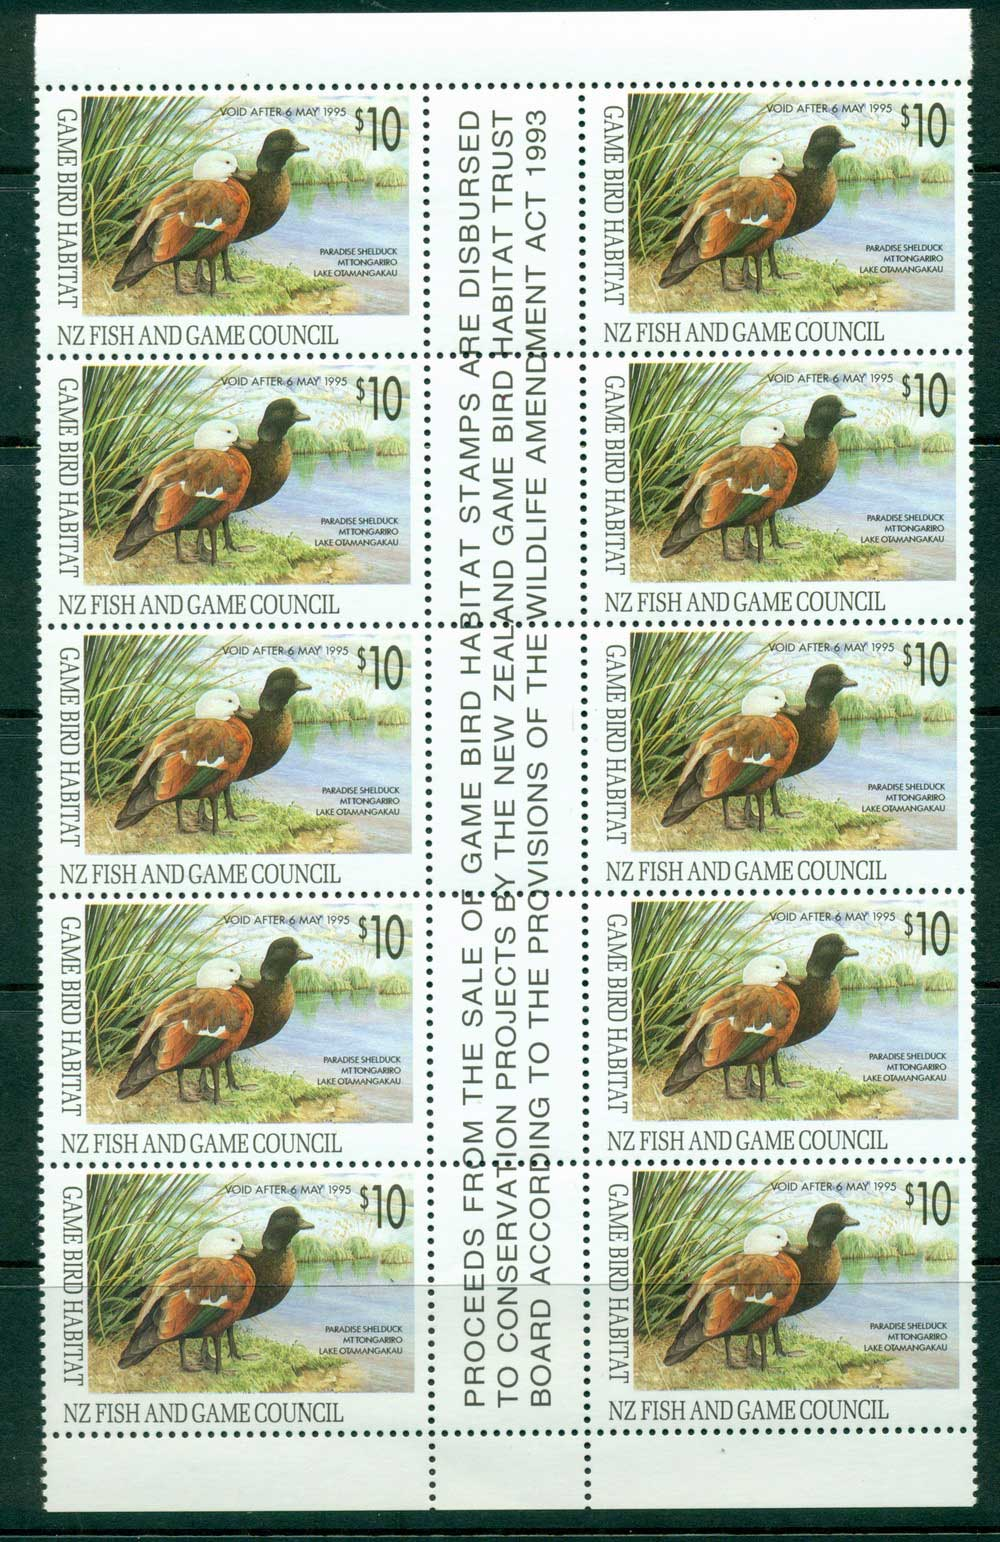 New Zealand 1993 $10 Game Bird Habitat Duck Stamp Gutter Block 10 MUH Lot26310